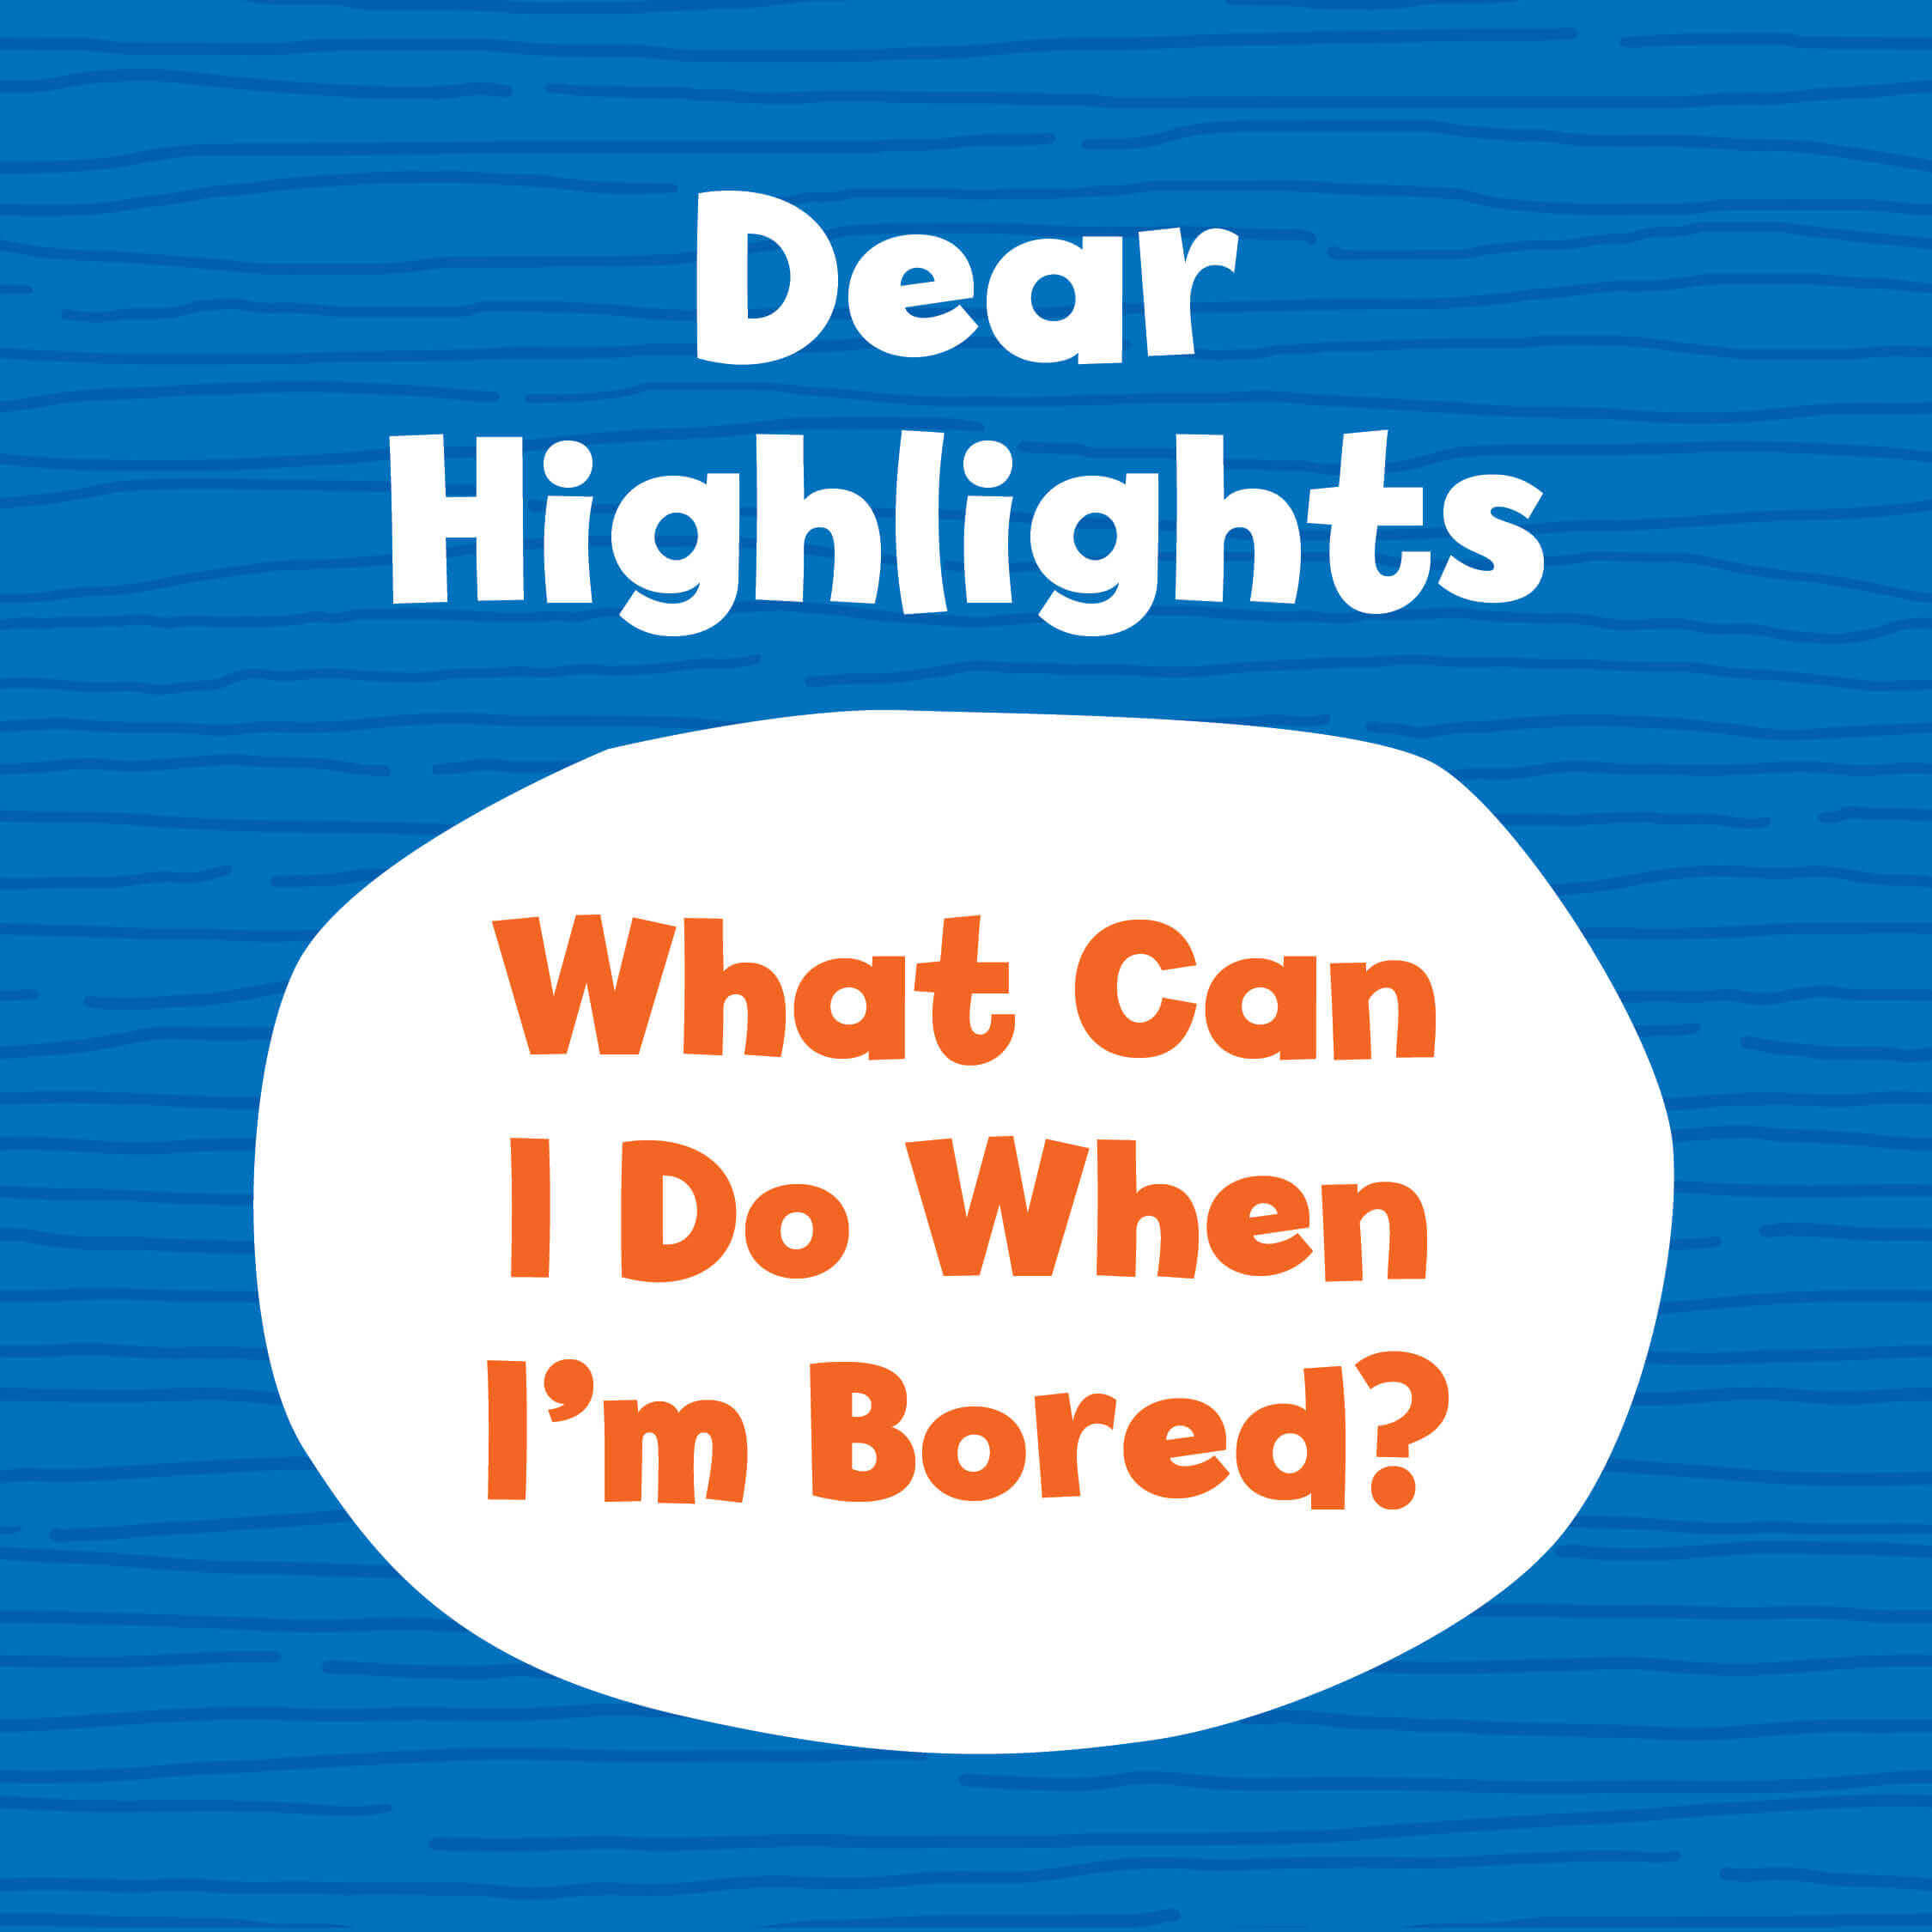 Dear Highlights: What Can I Do When I'm Bored?